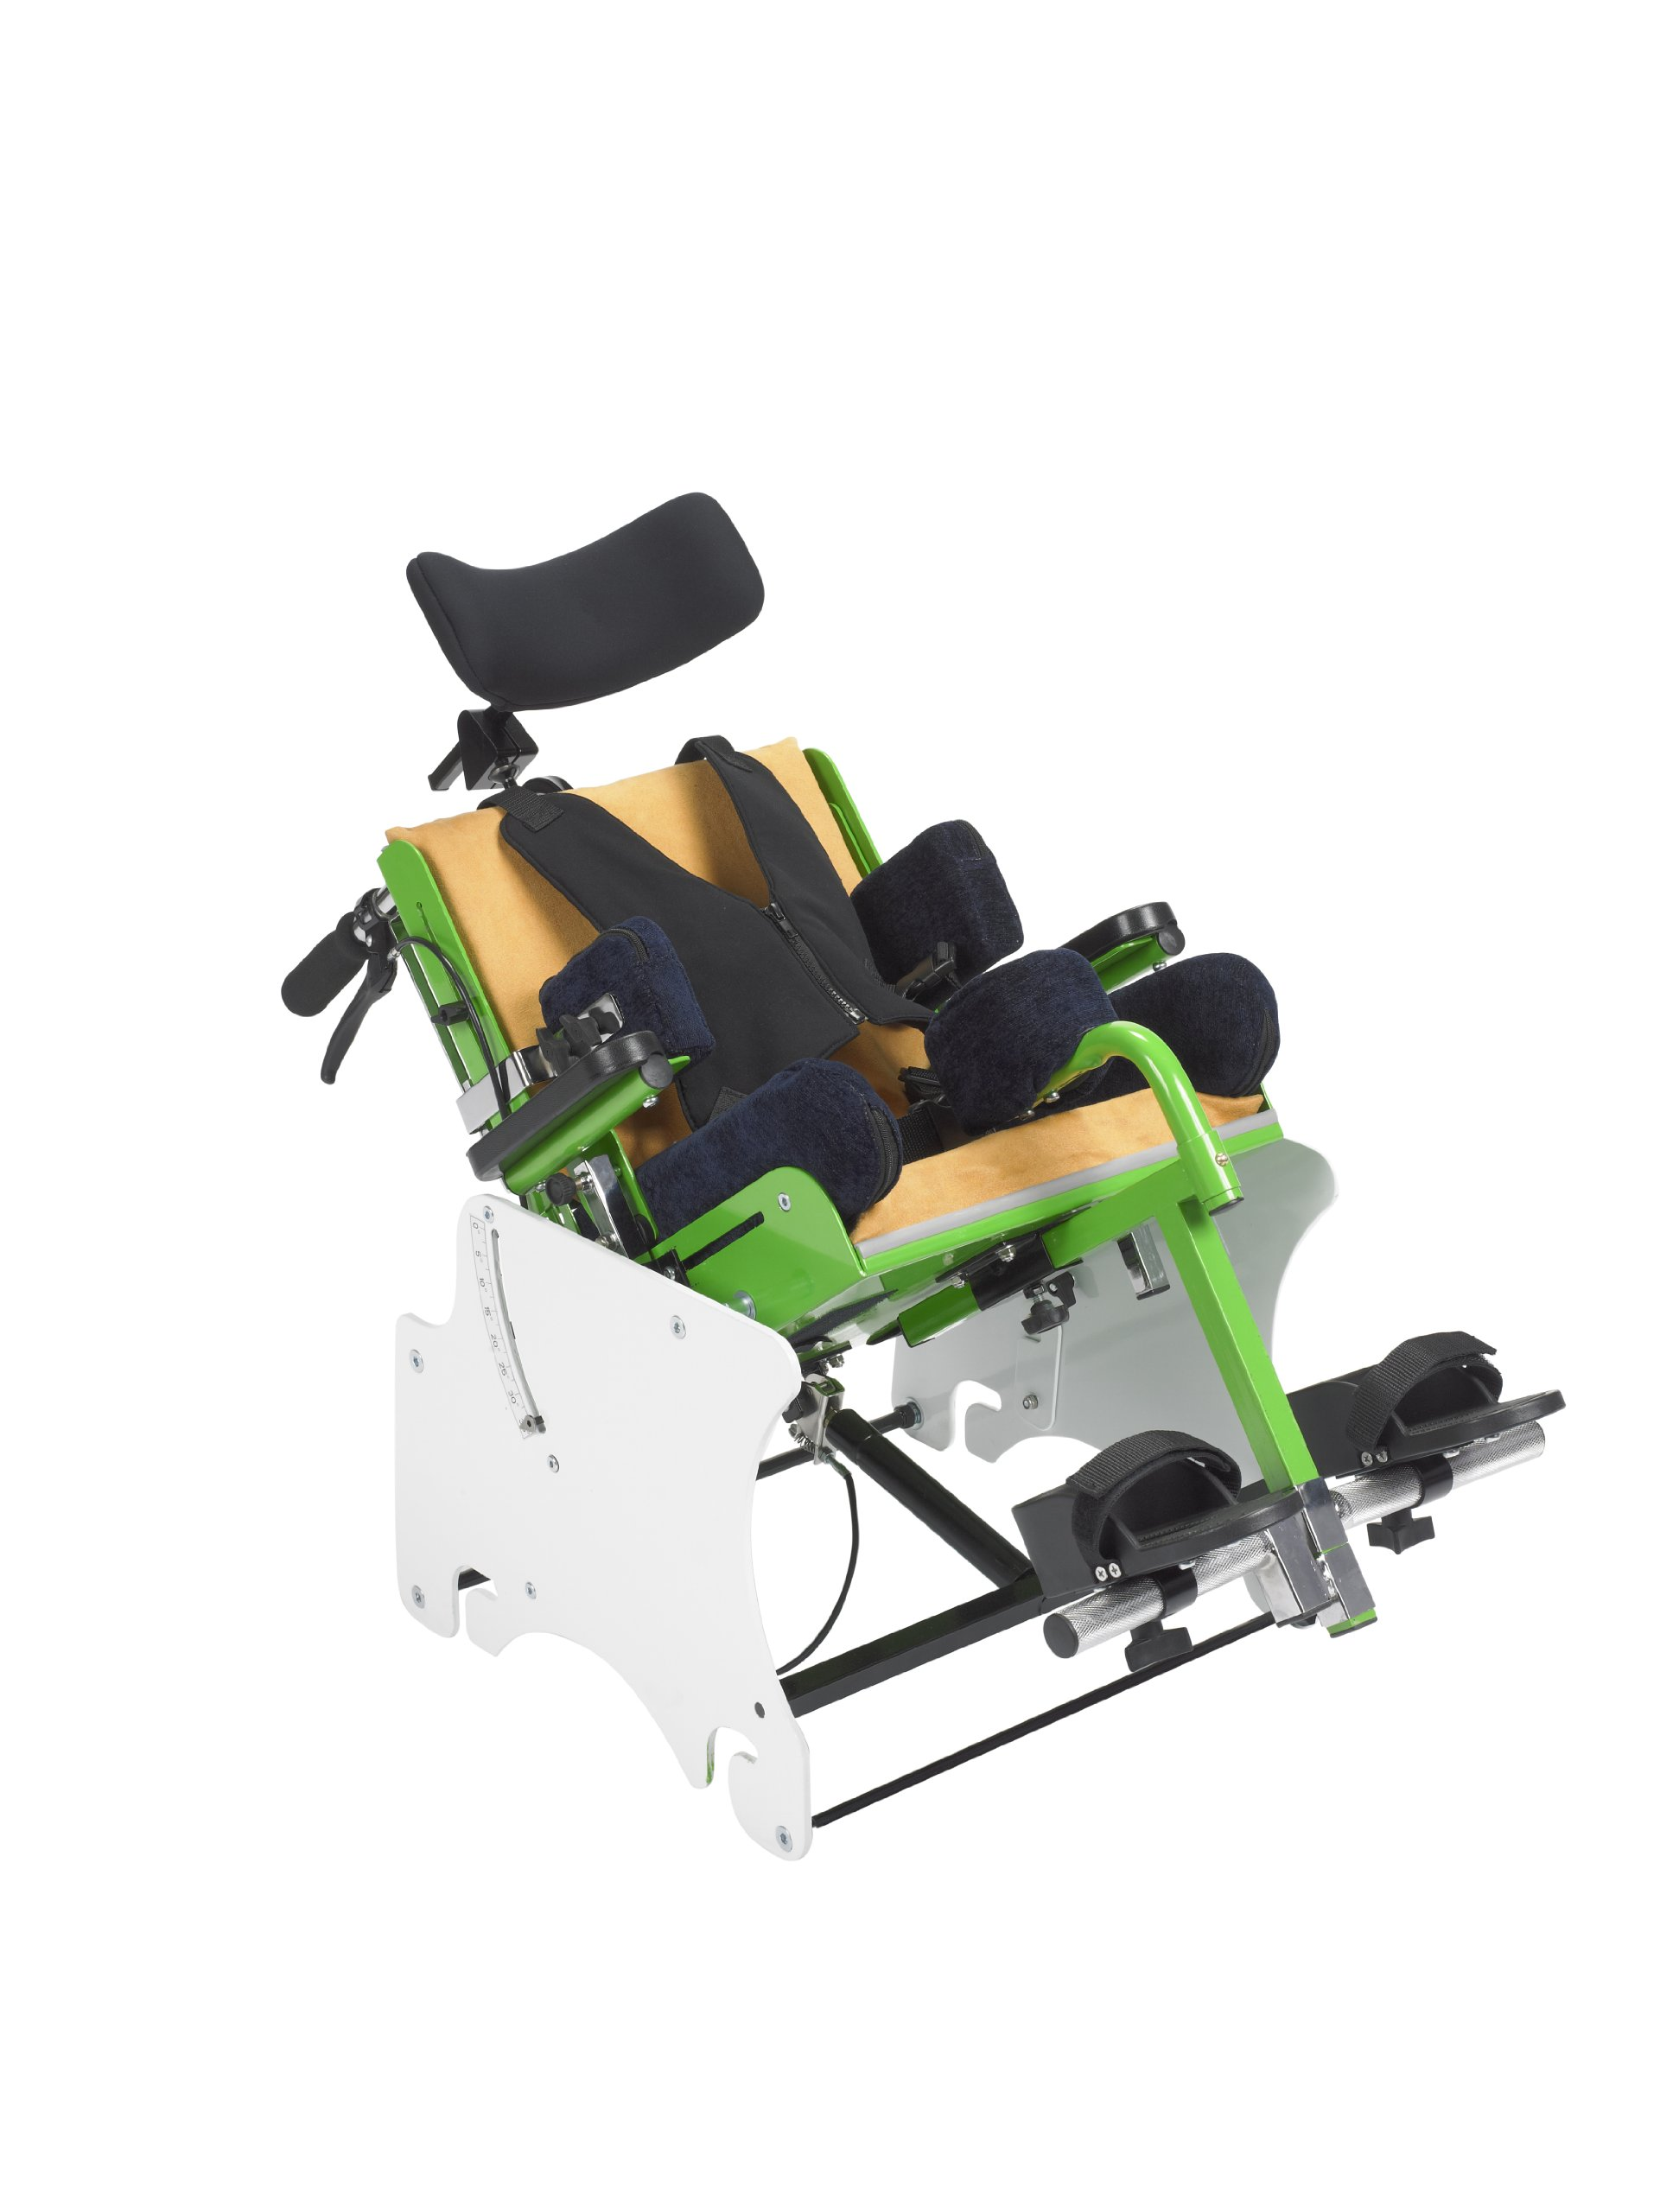 Wenzelite Ms 3000N Mss Tilt and Recline Seating System, Green